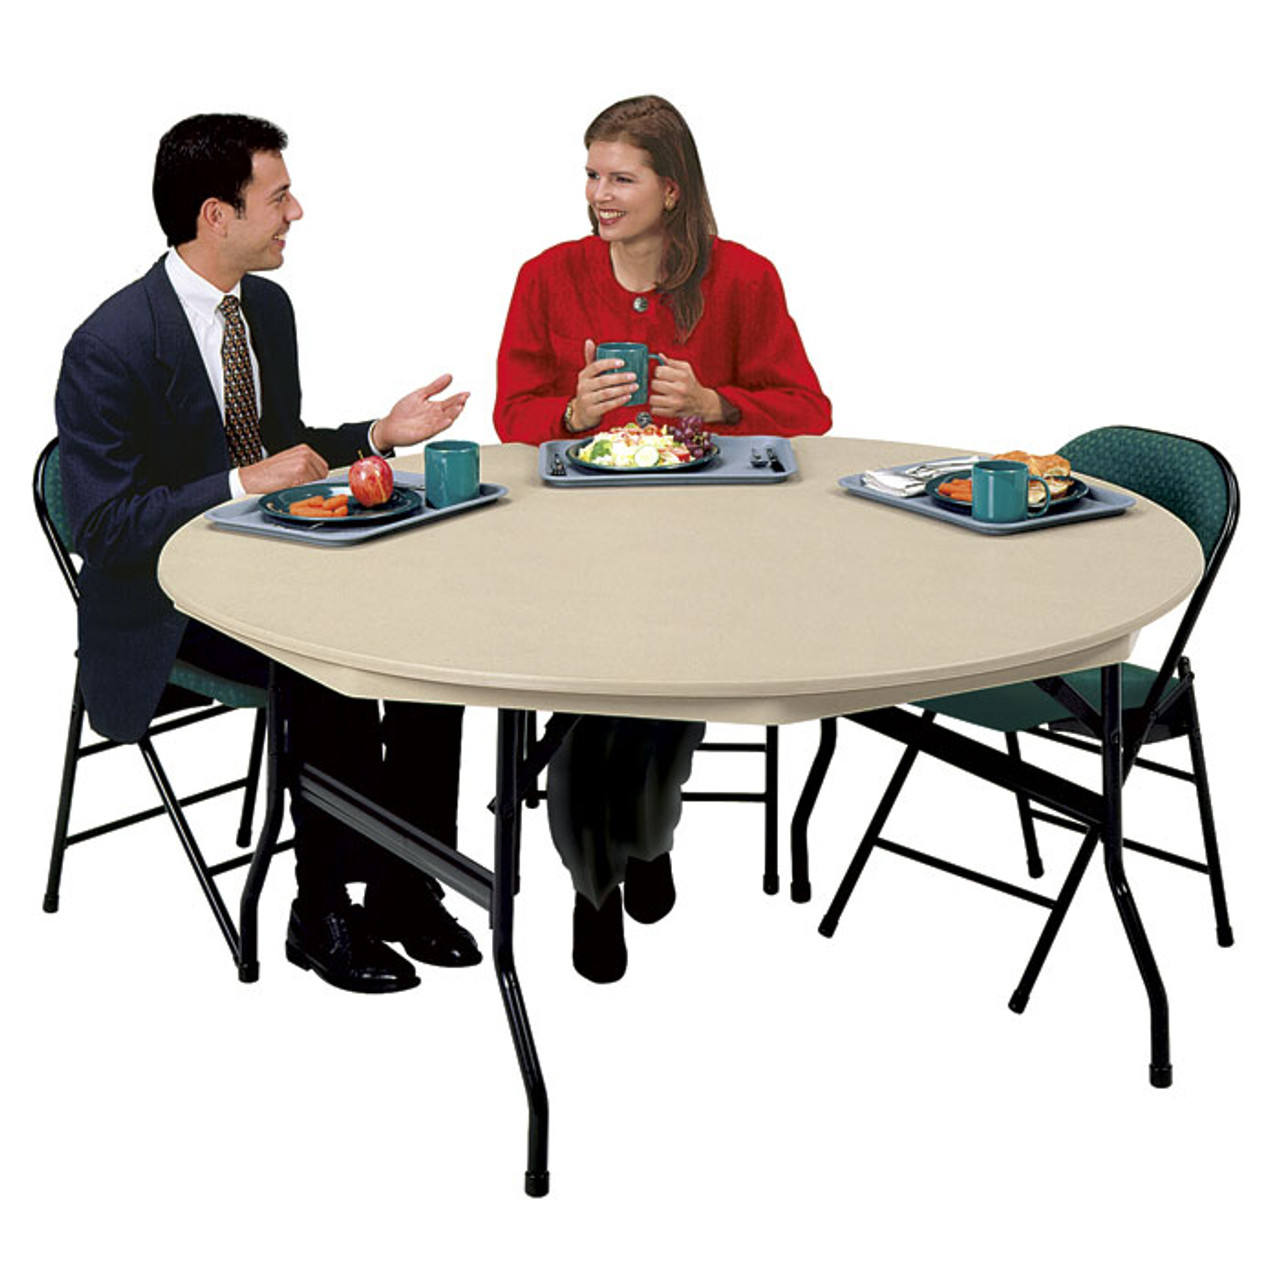 - DLR72 Lightweight Folding Table 72 Inch Round L Affordable Folding